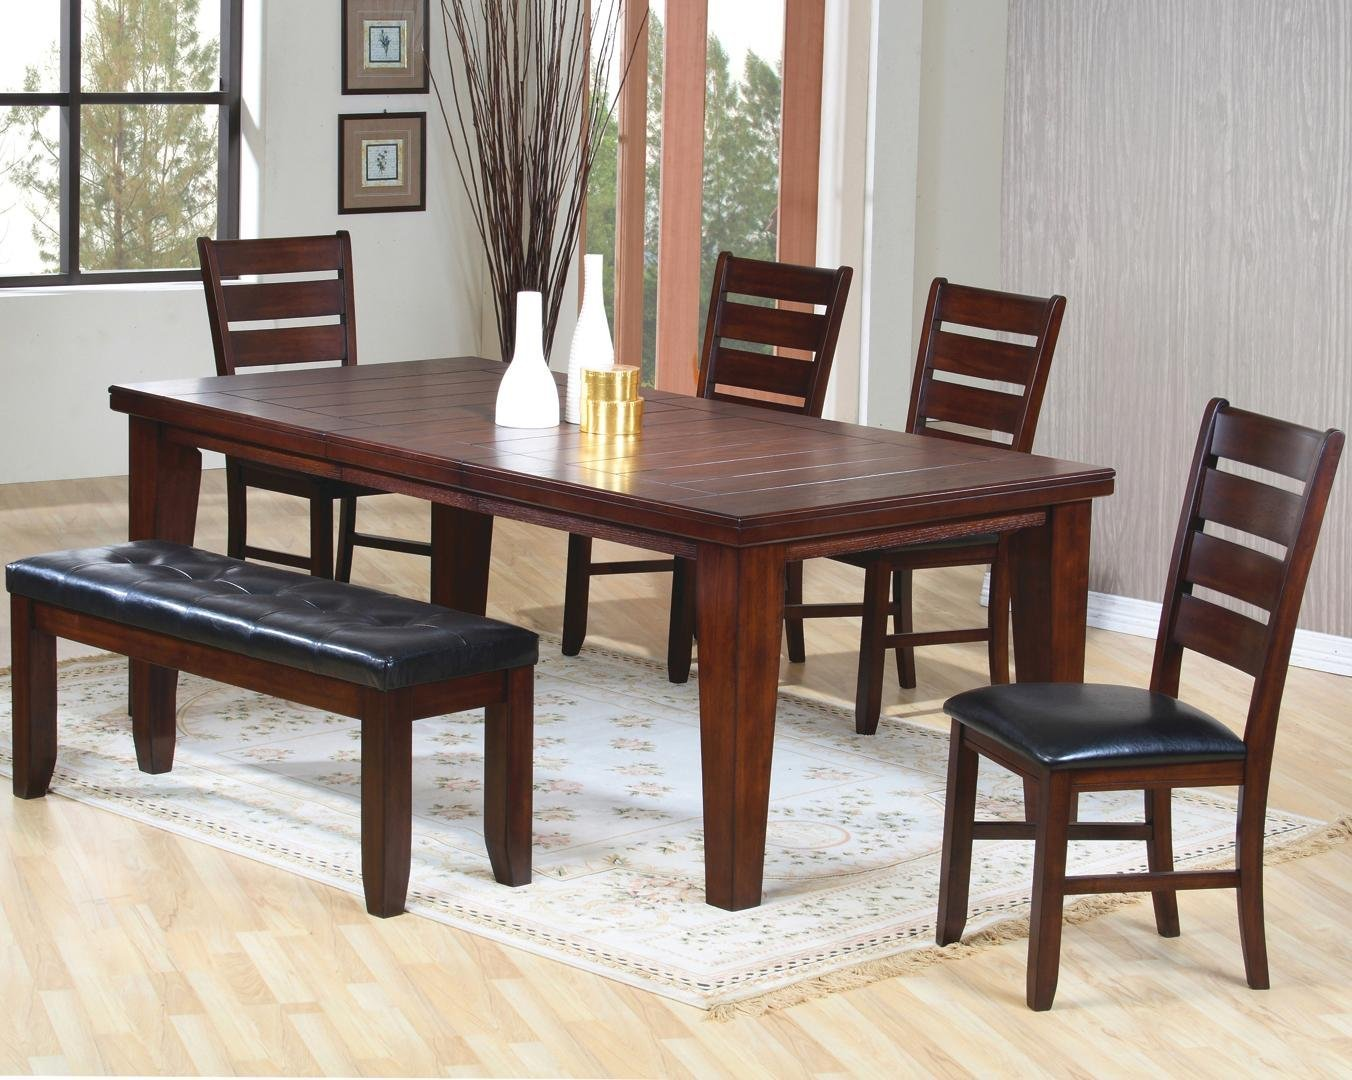 Solid Dark Dining Room Table With Chairs And Bench On Stylidh Rug